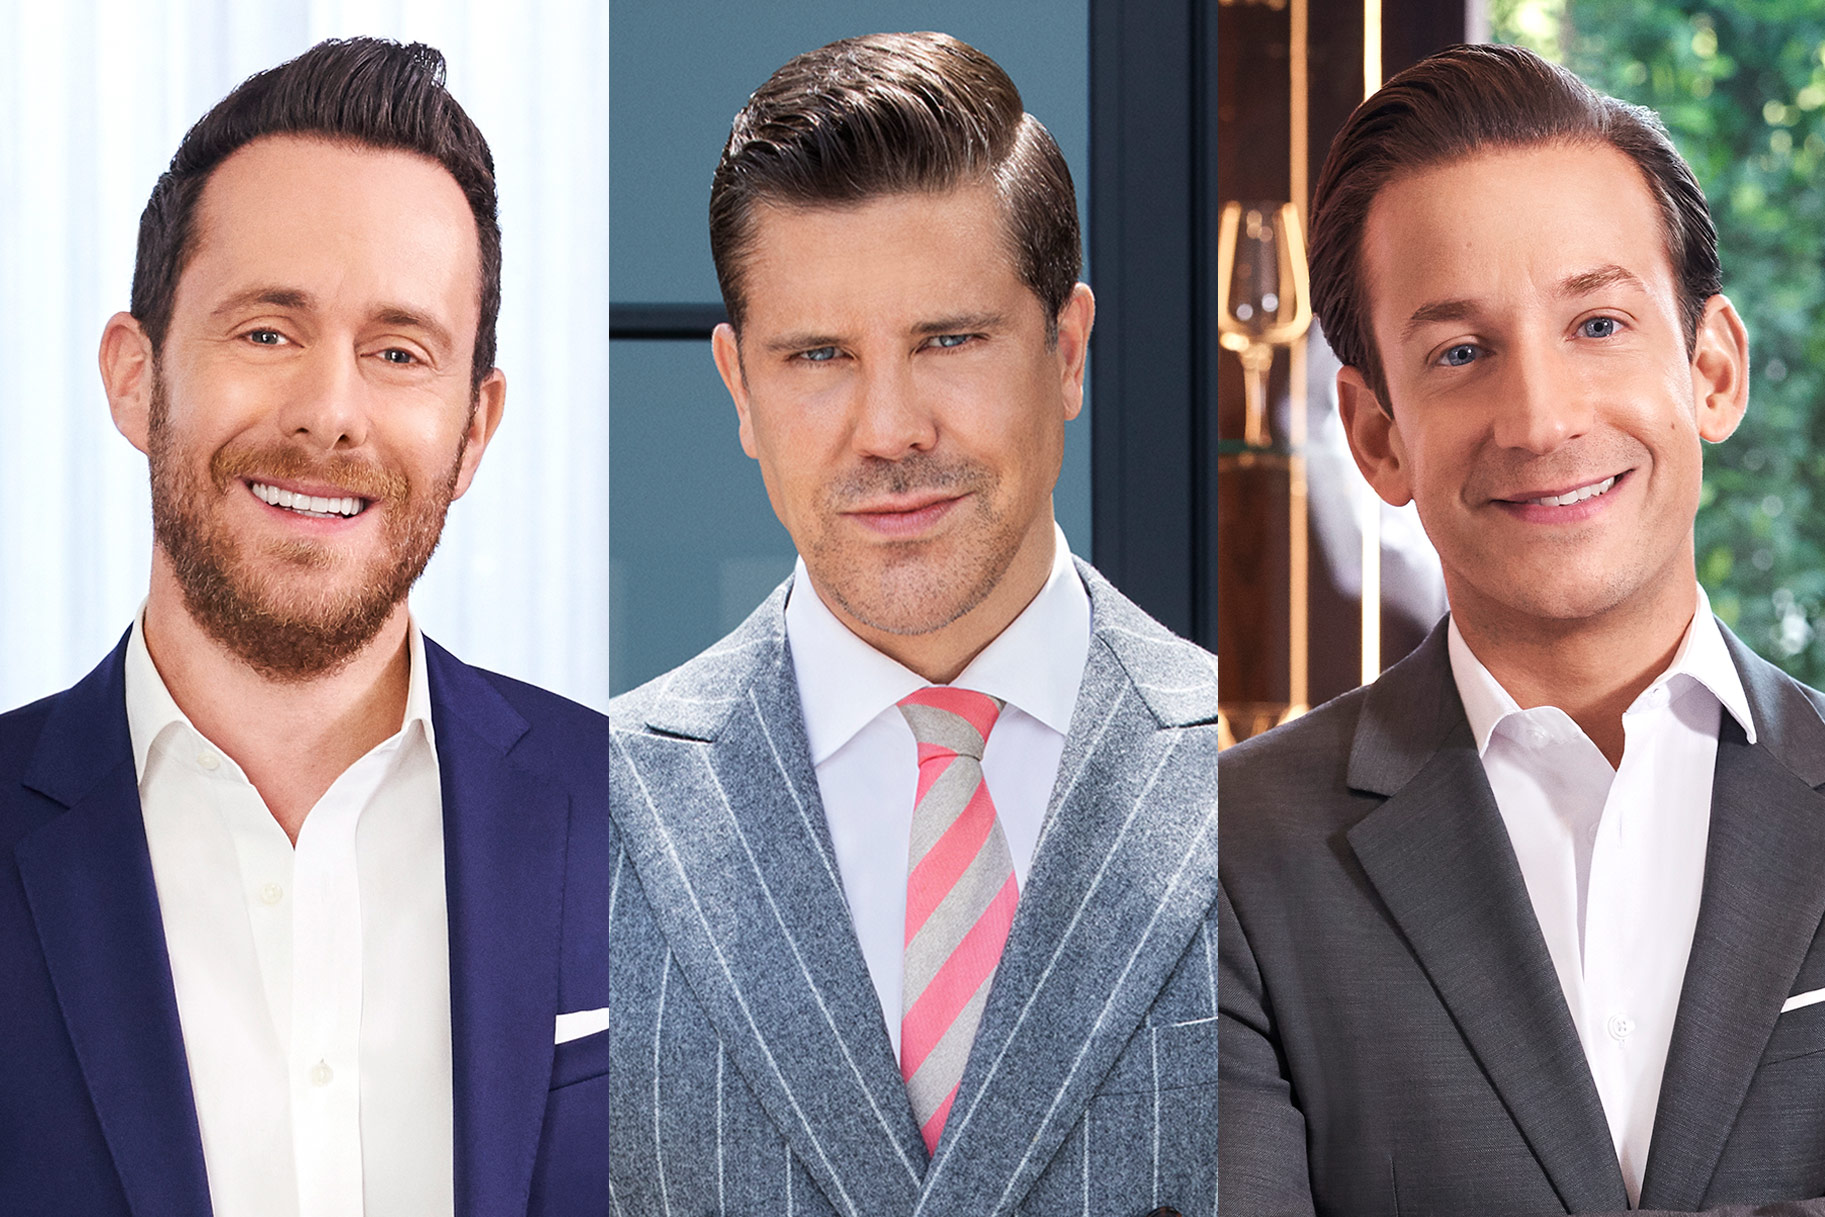 Fredrik Eklund James David Mdlla